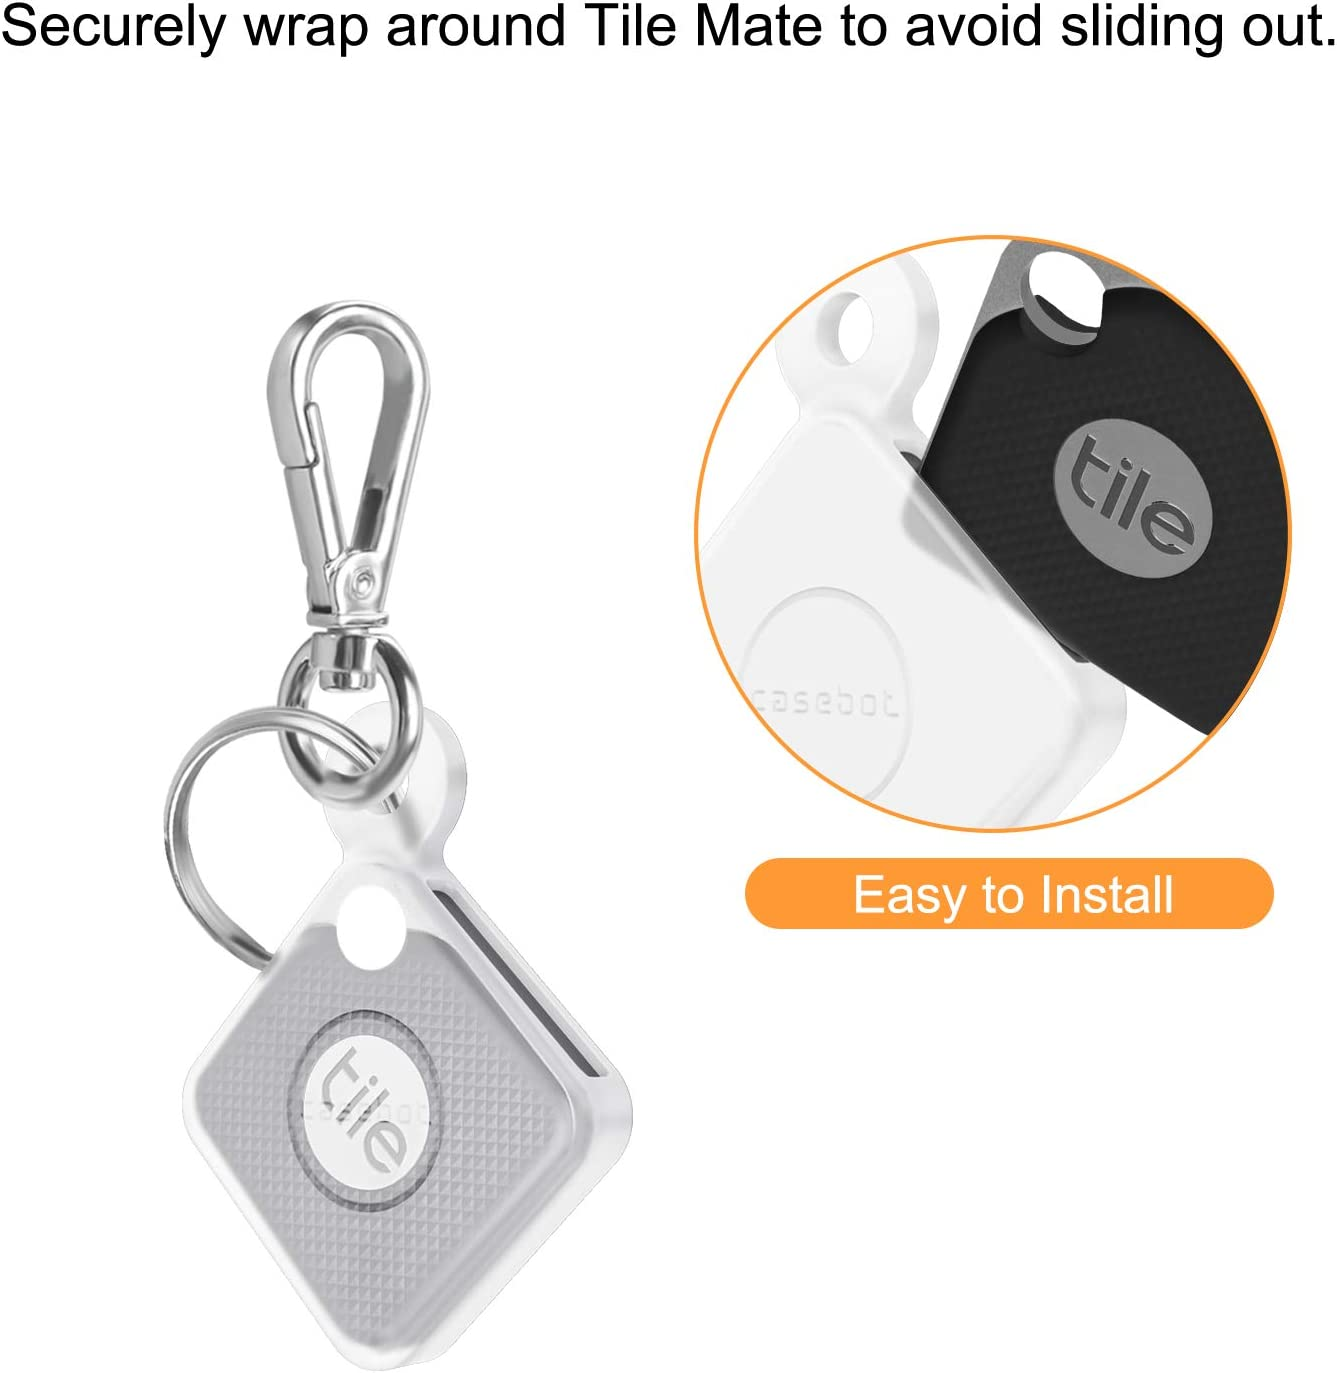 2020 /& 2018 Fintie Silicone Case with Carabiner Keychain for Tile Mate Black Anti-Scratch Lightweight Soft Protective Sleeve Skin Cover 2 Pack